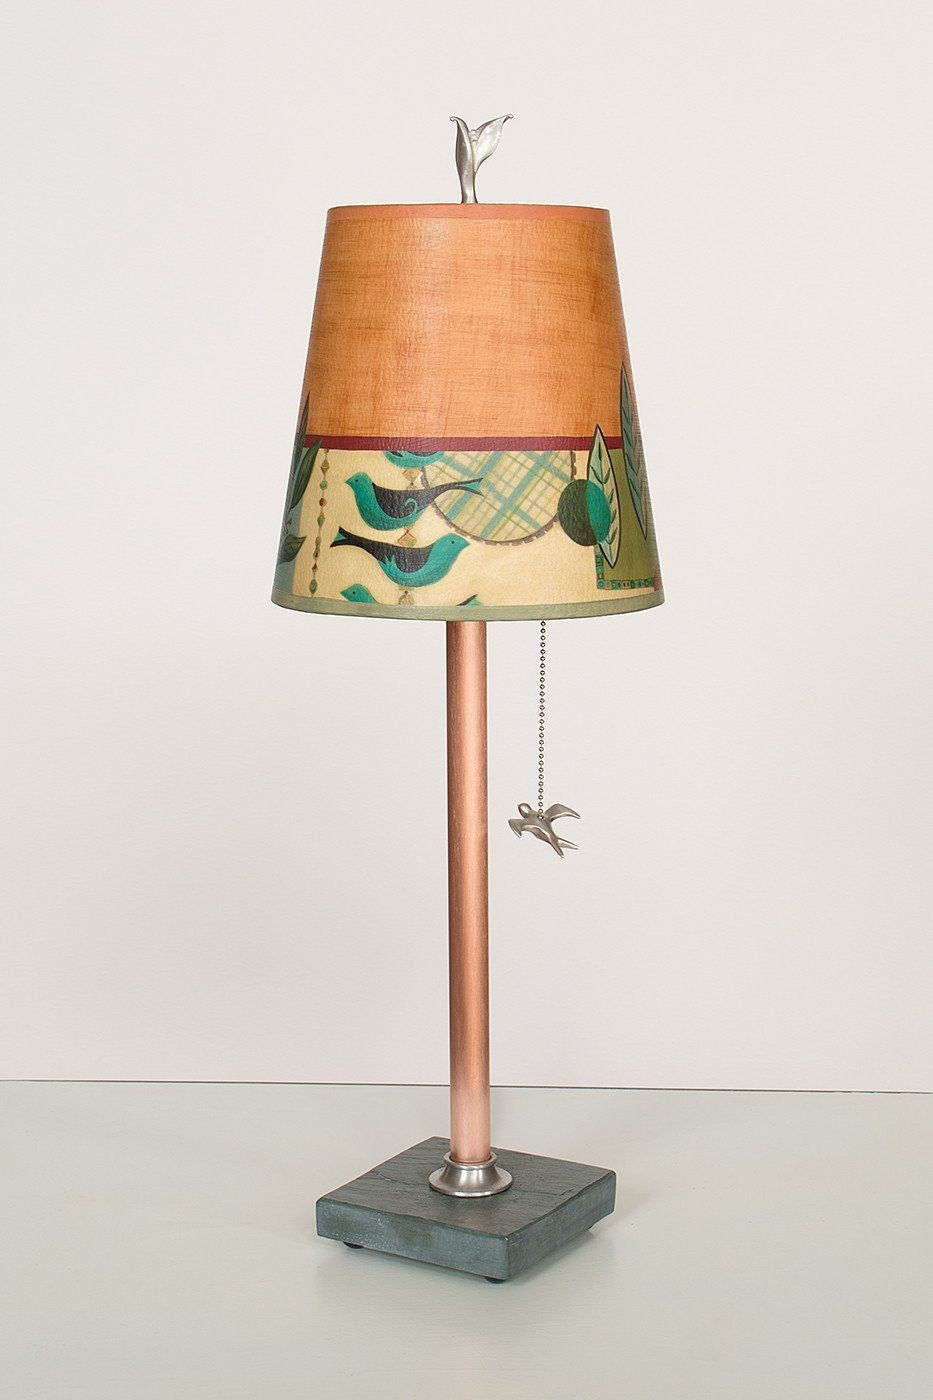 Copper Table Lamp on Vermont Slate Base with Small Drum Shade in New Capri Spice Lit